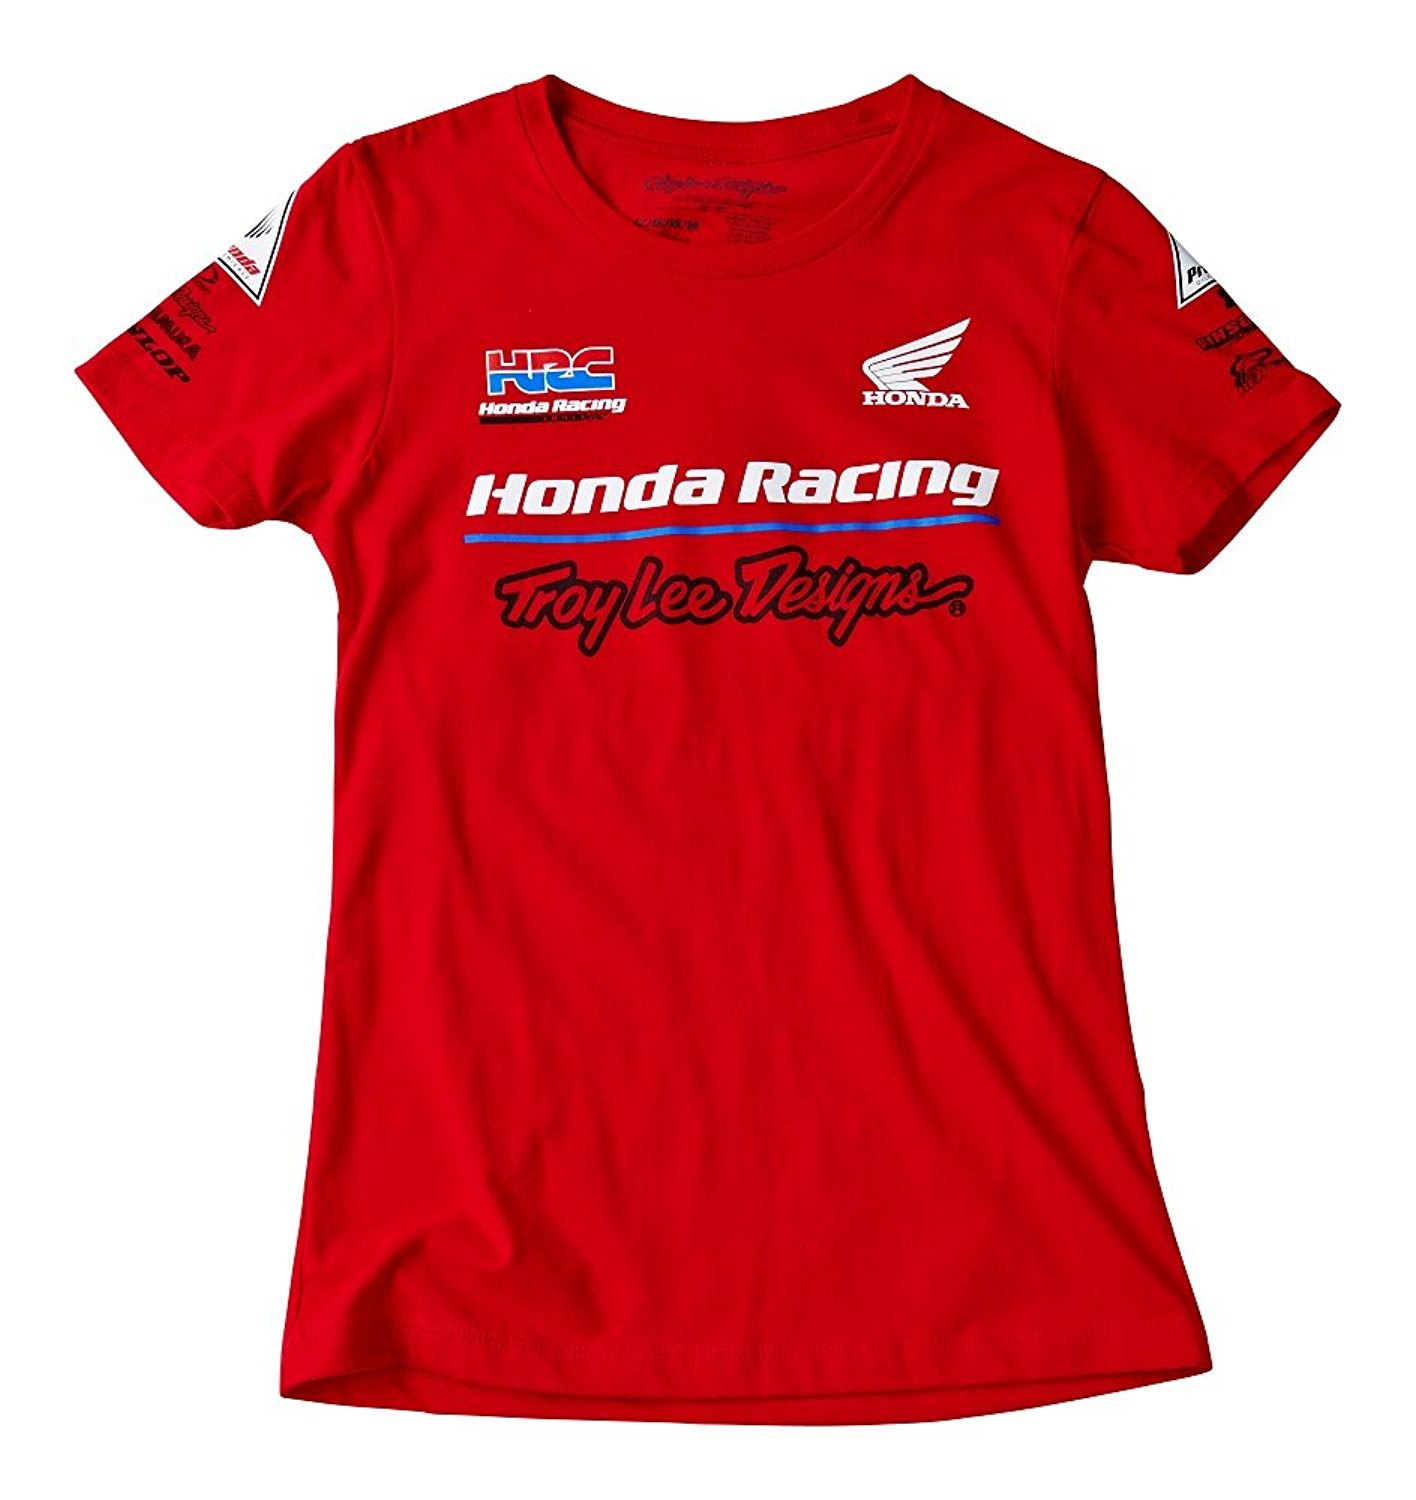 Racing Team Shirts Designs | Cheap Team Shirt Designs Find Team Shirt Designs Deals On Line At